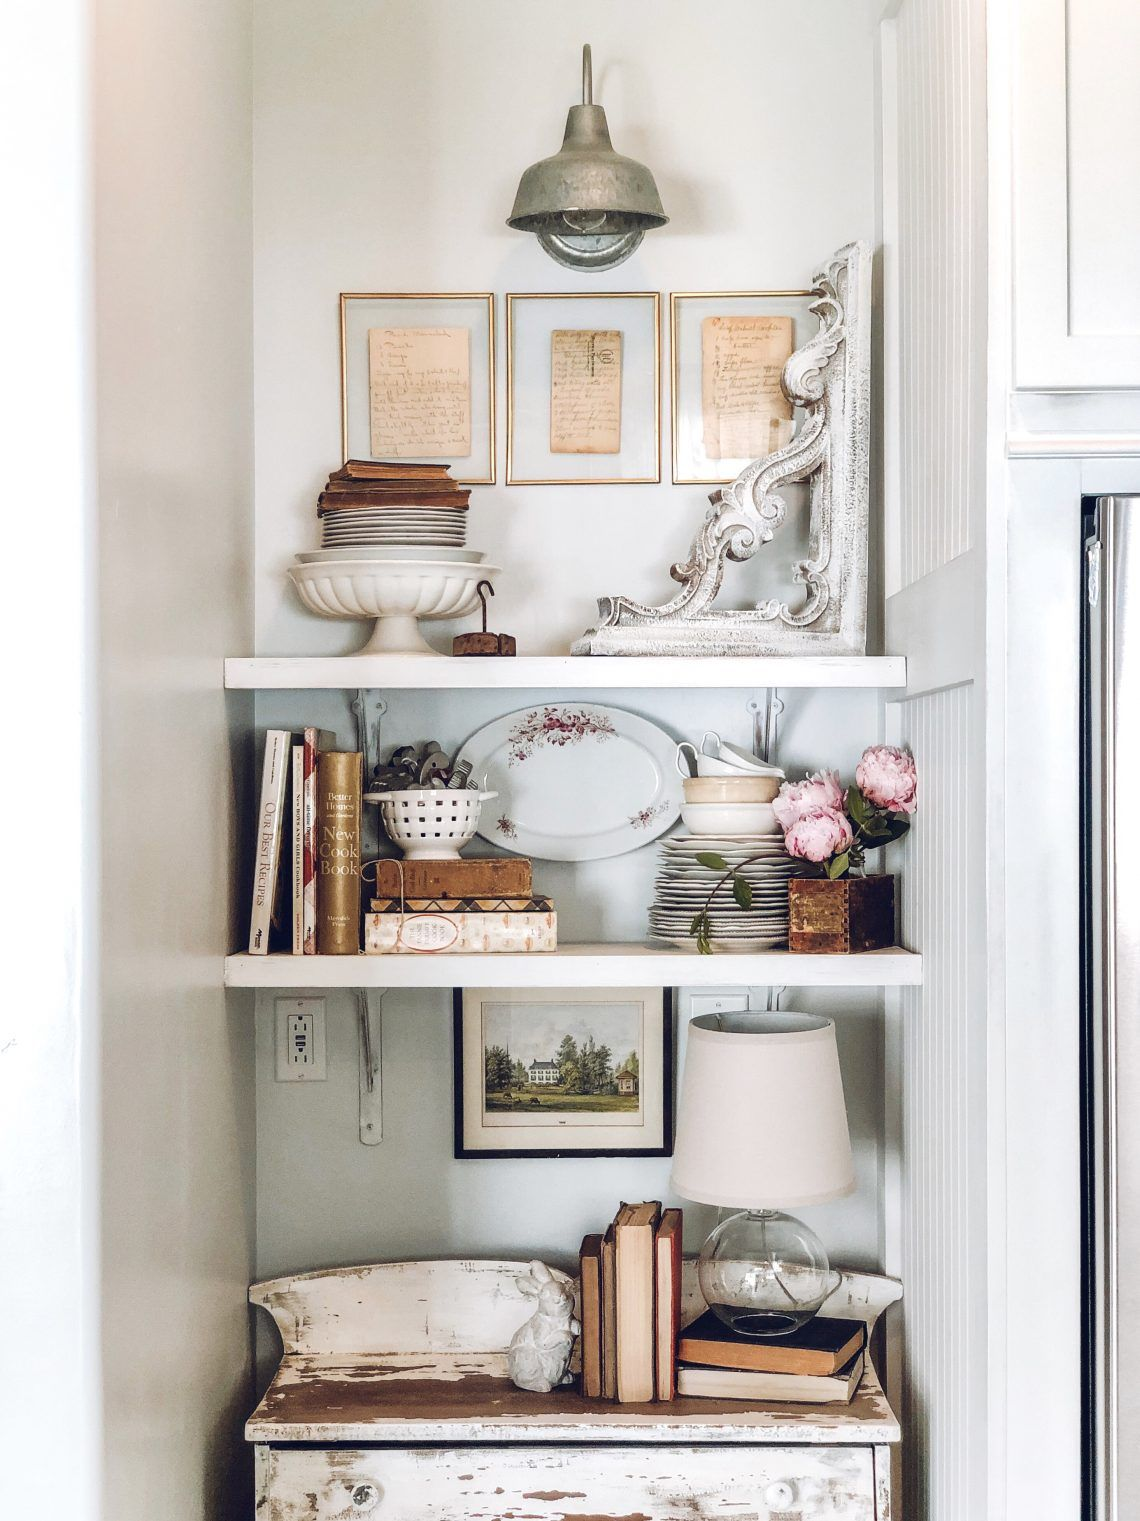 Top Shelf Clearance Challenge June With Images Home Decor Decor Shelves